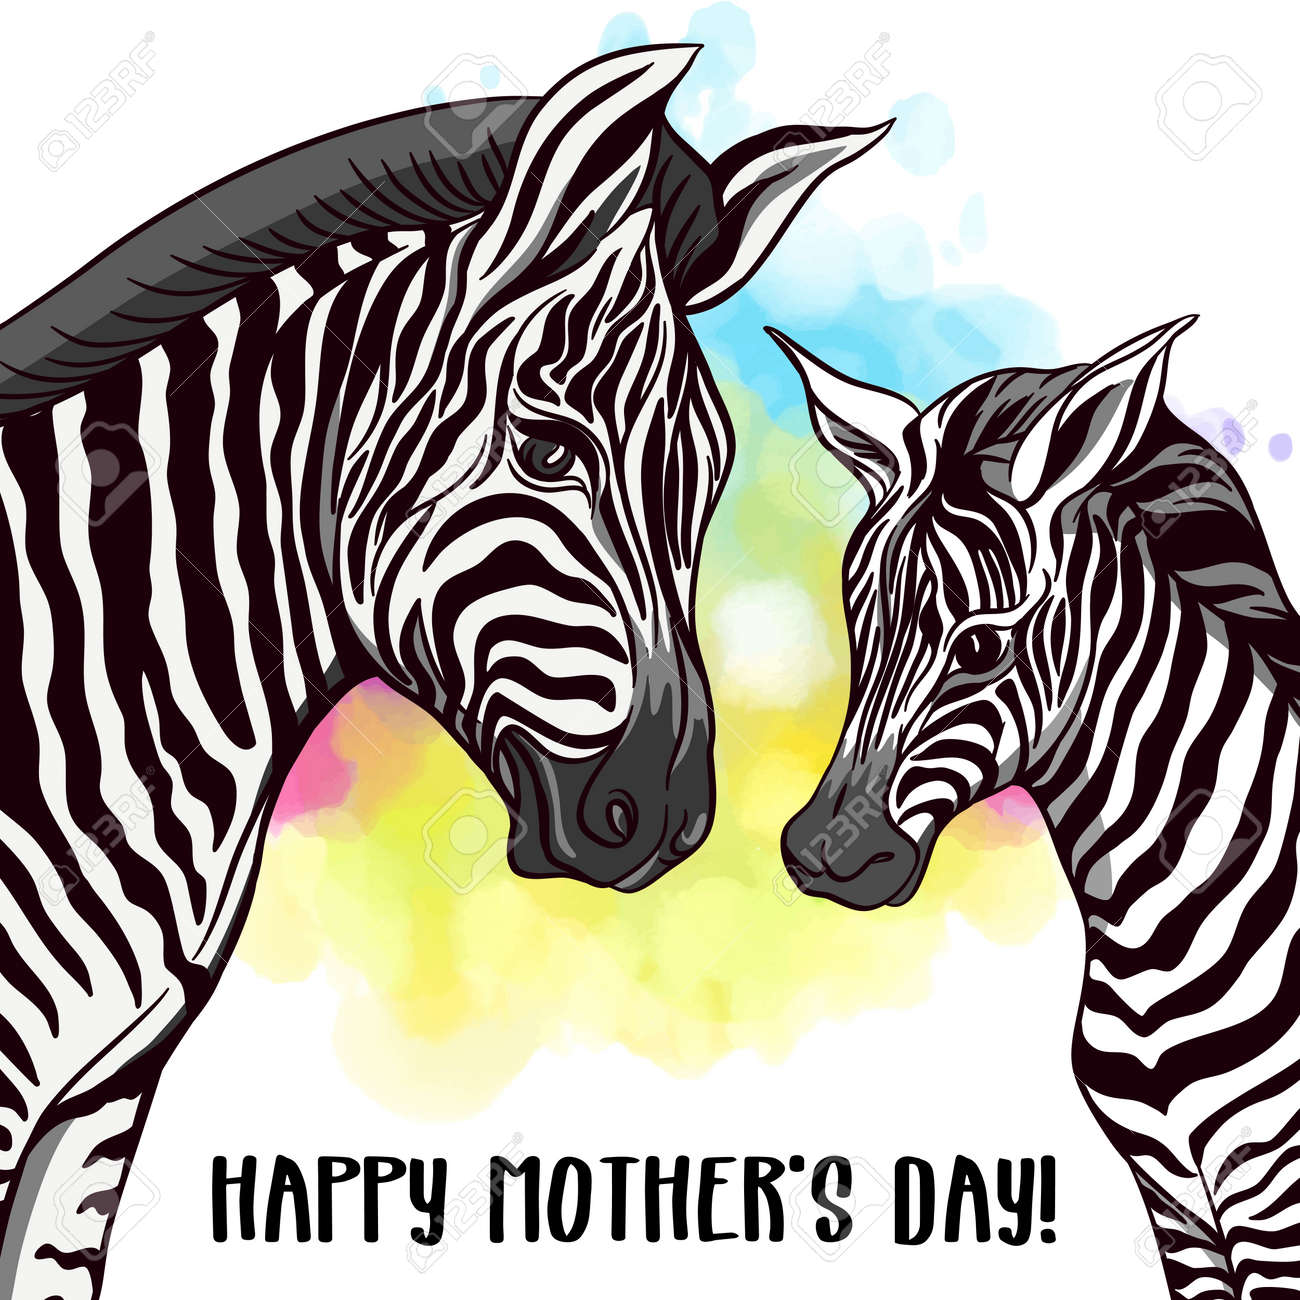 Background With Zebra Mother And Her Child On Rainbow Watercolor